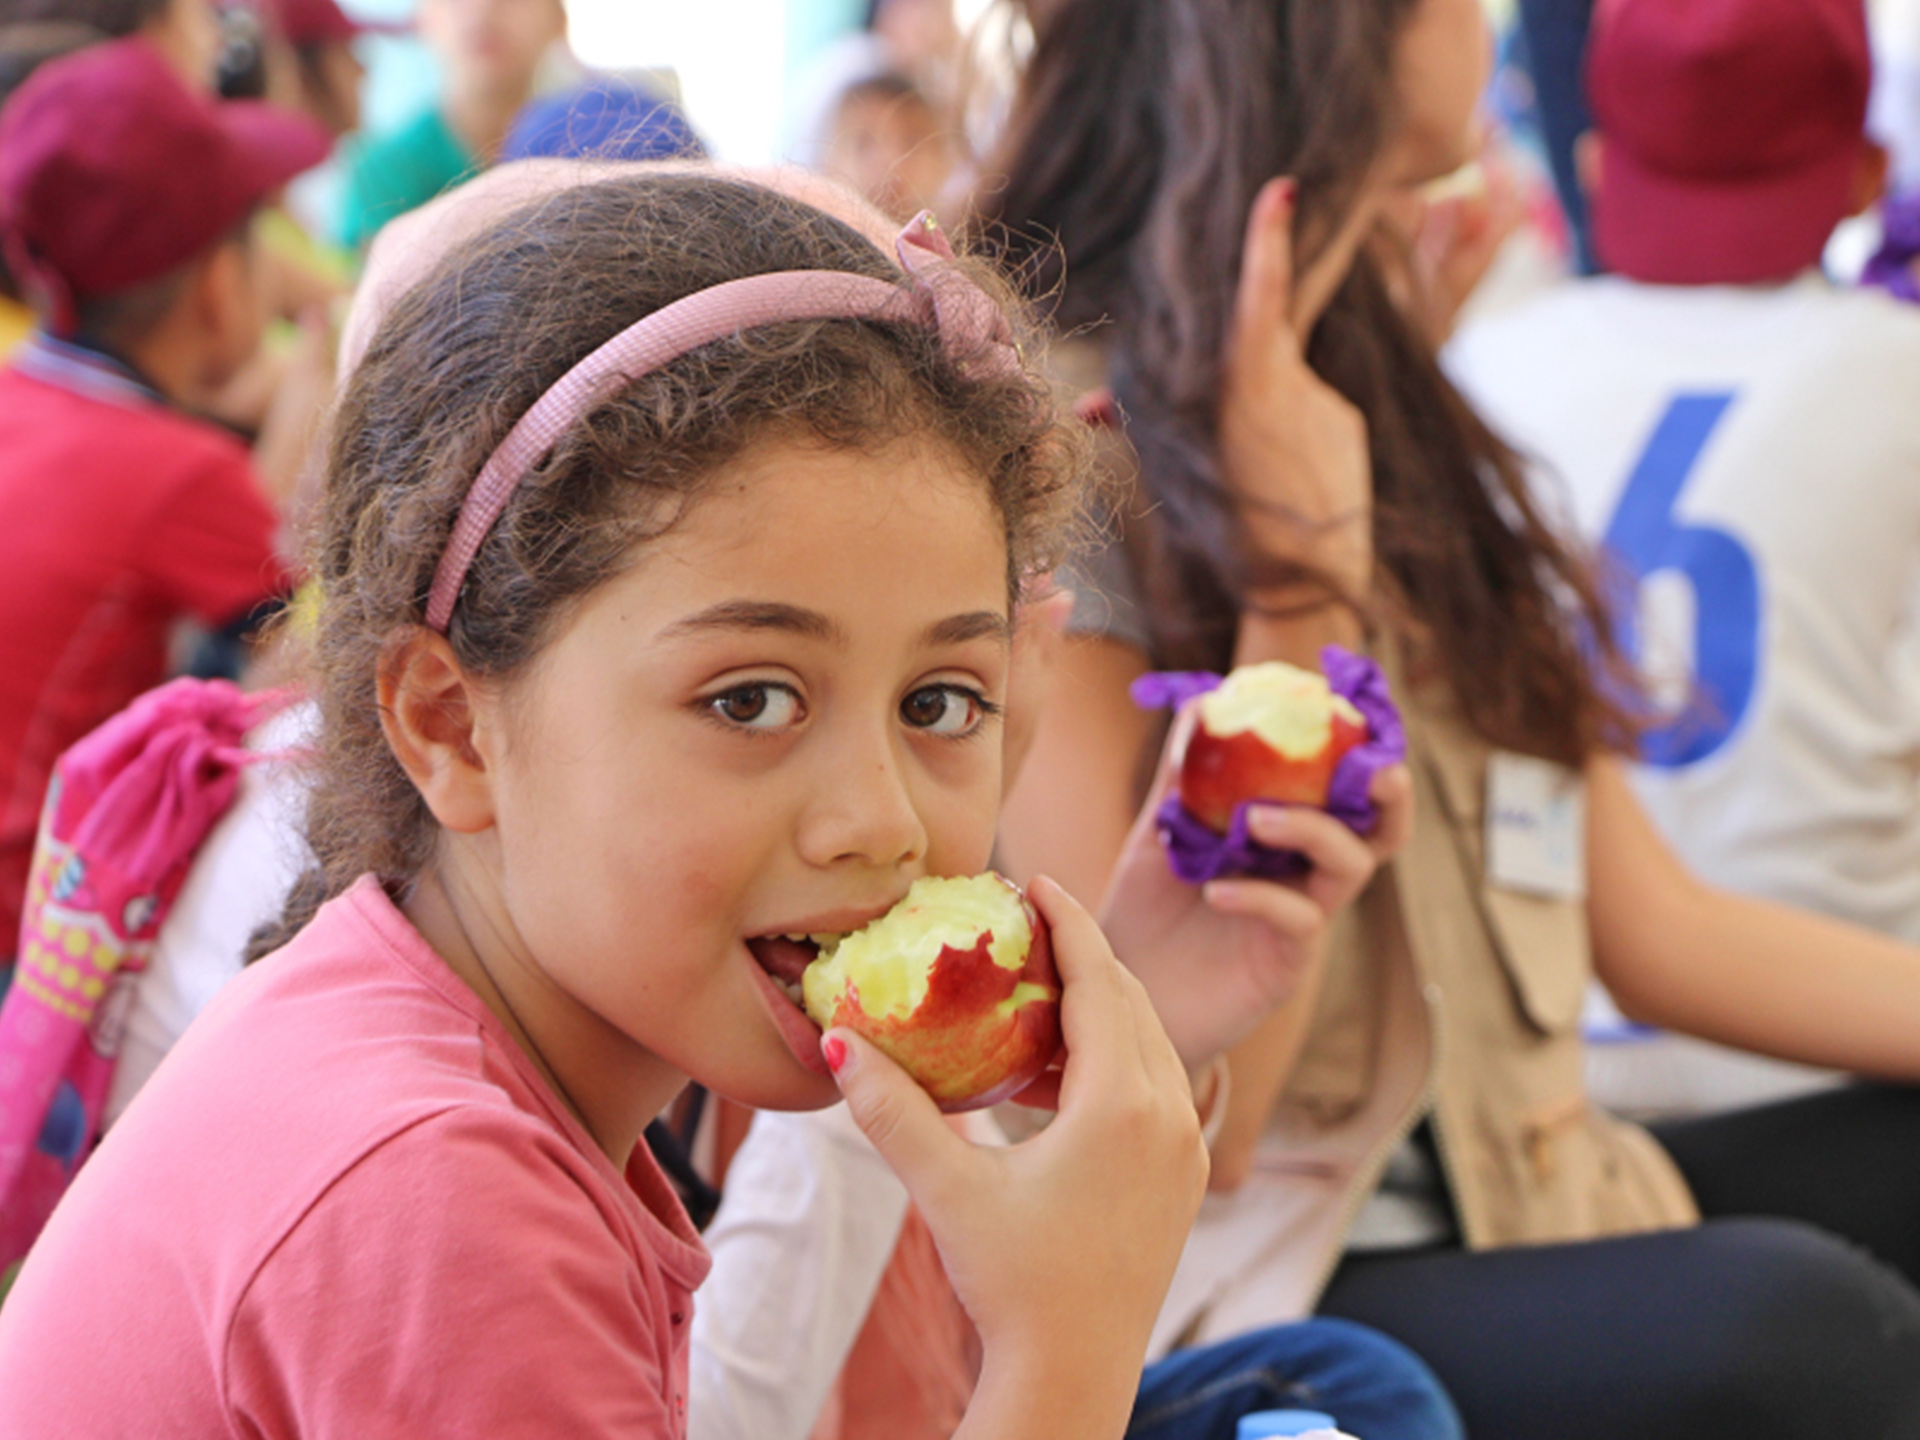 Feeding the future of girls the world over